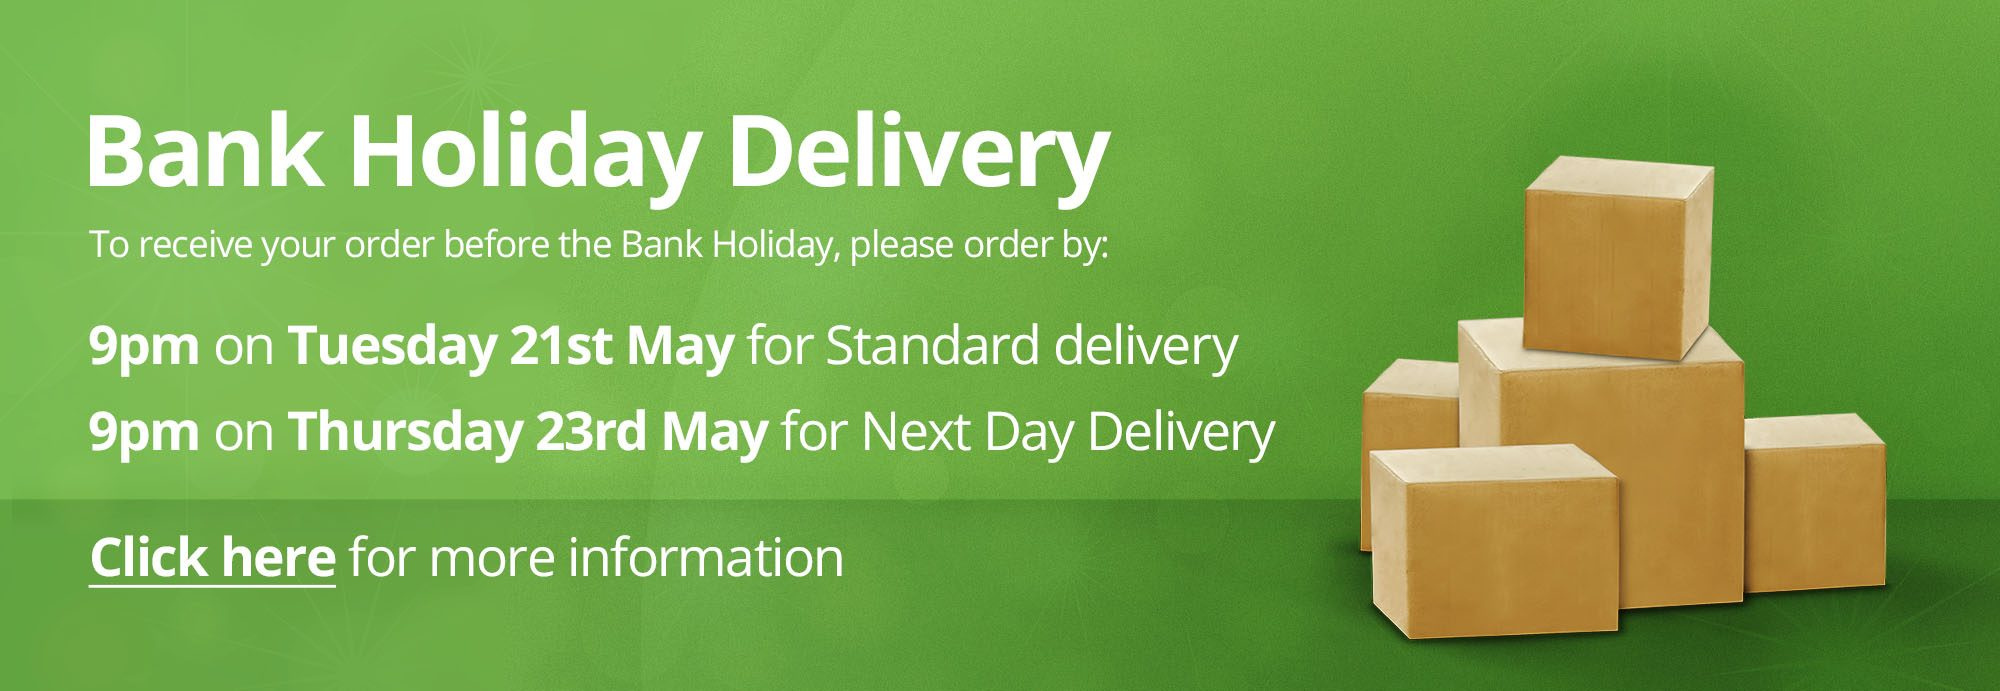 Bank Holiday Delivery